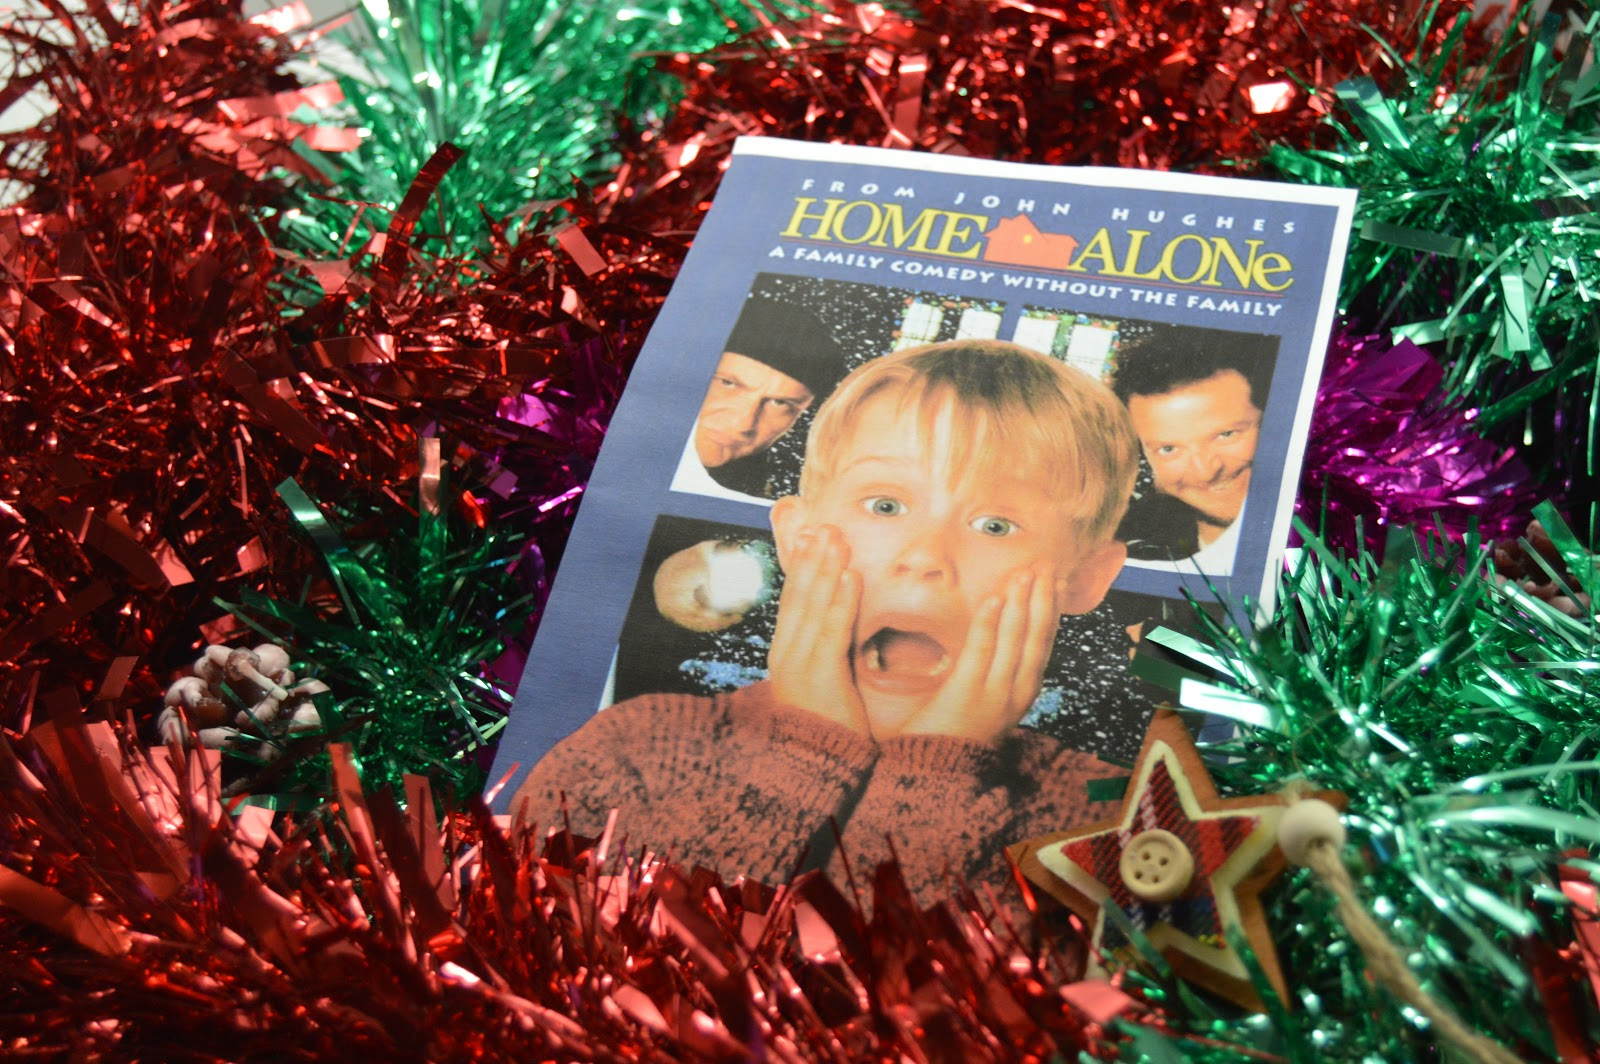 A photo of home alone movie